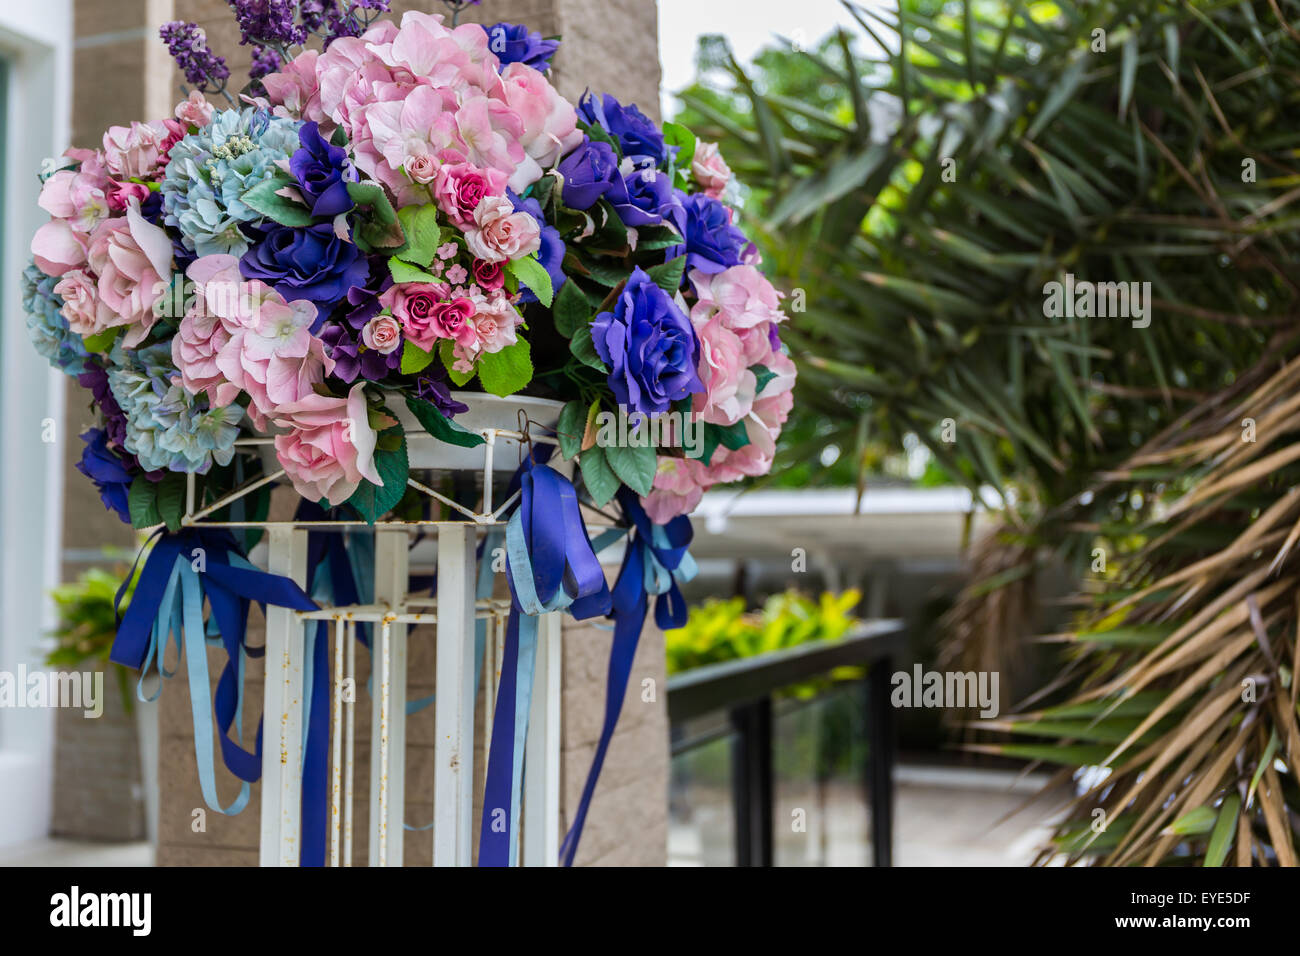 Colorful artificial flower bouquet in front of house. - Stock Image